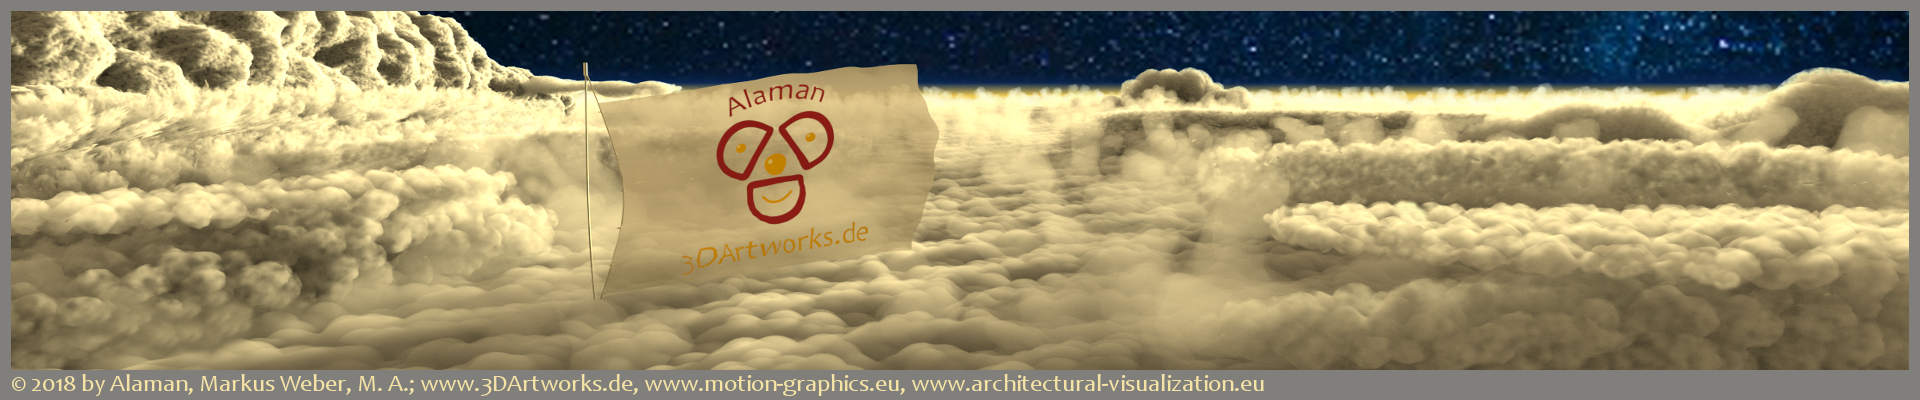 Logos: banner with the Alaman 3D Artworks logo in front of clouds